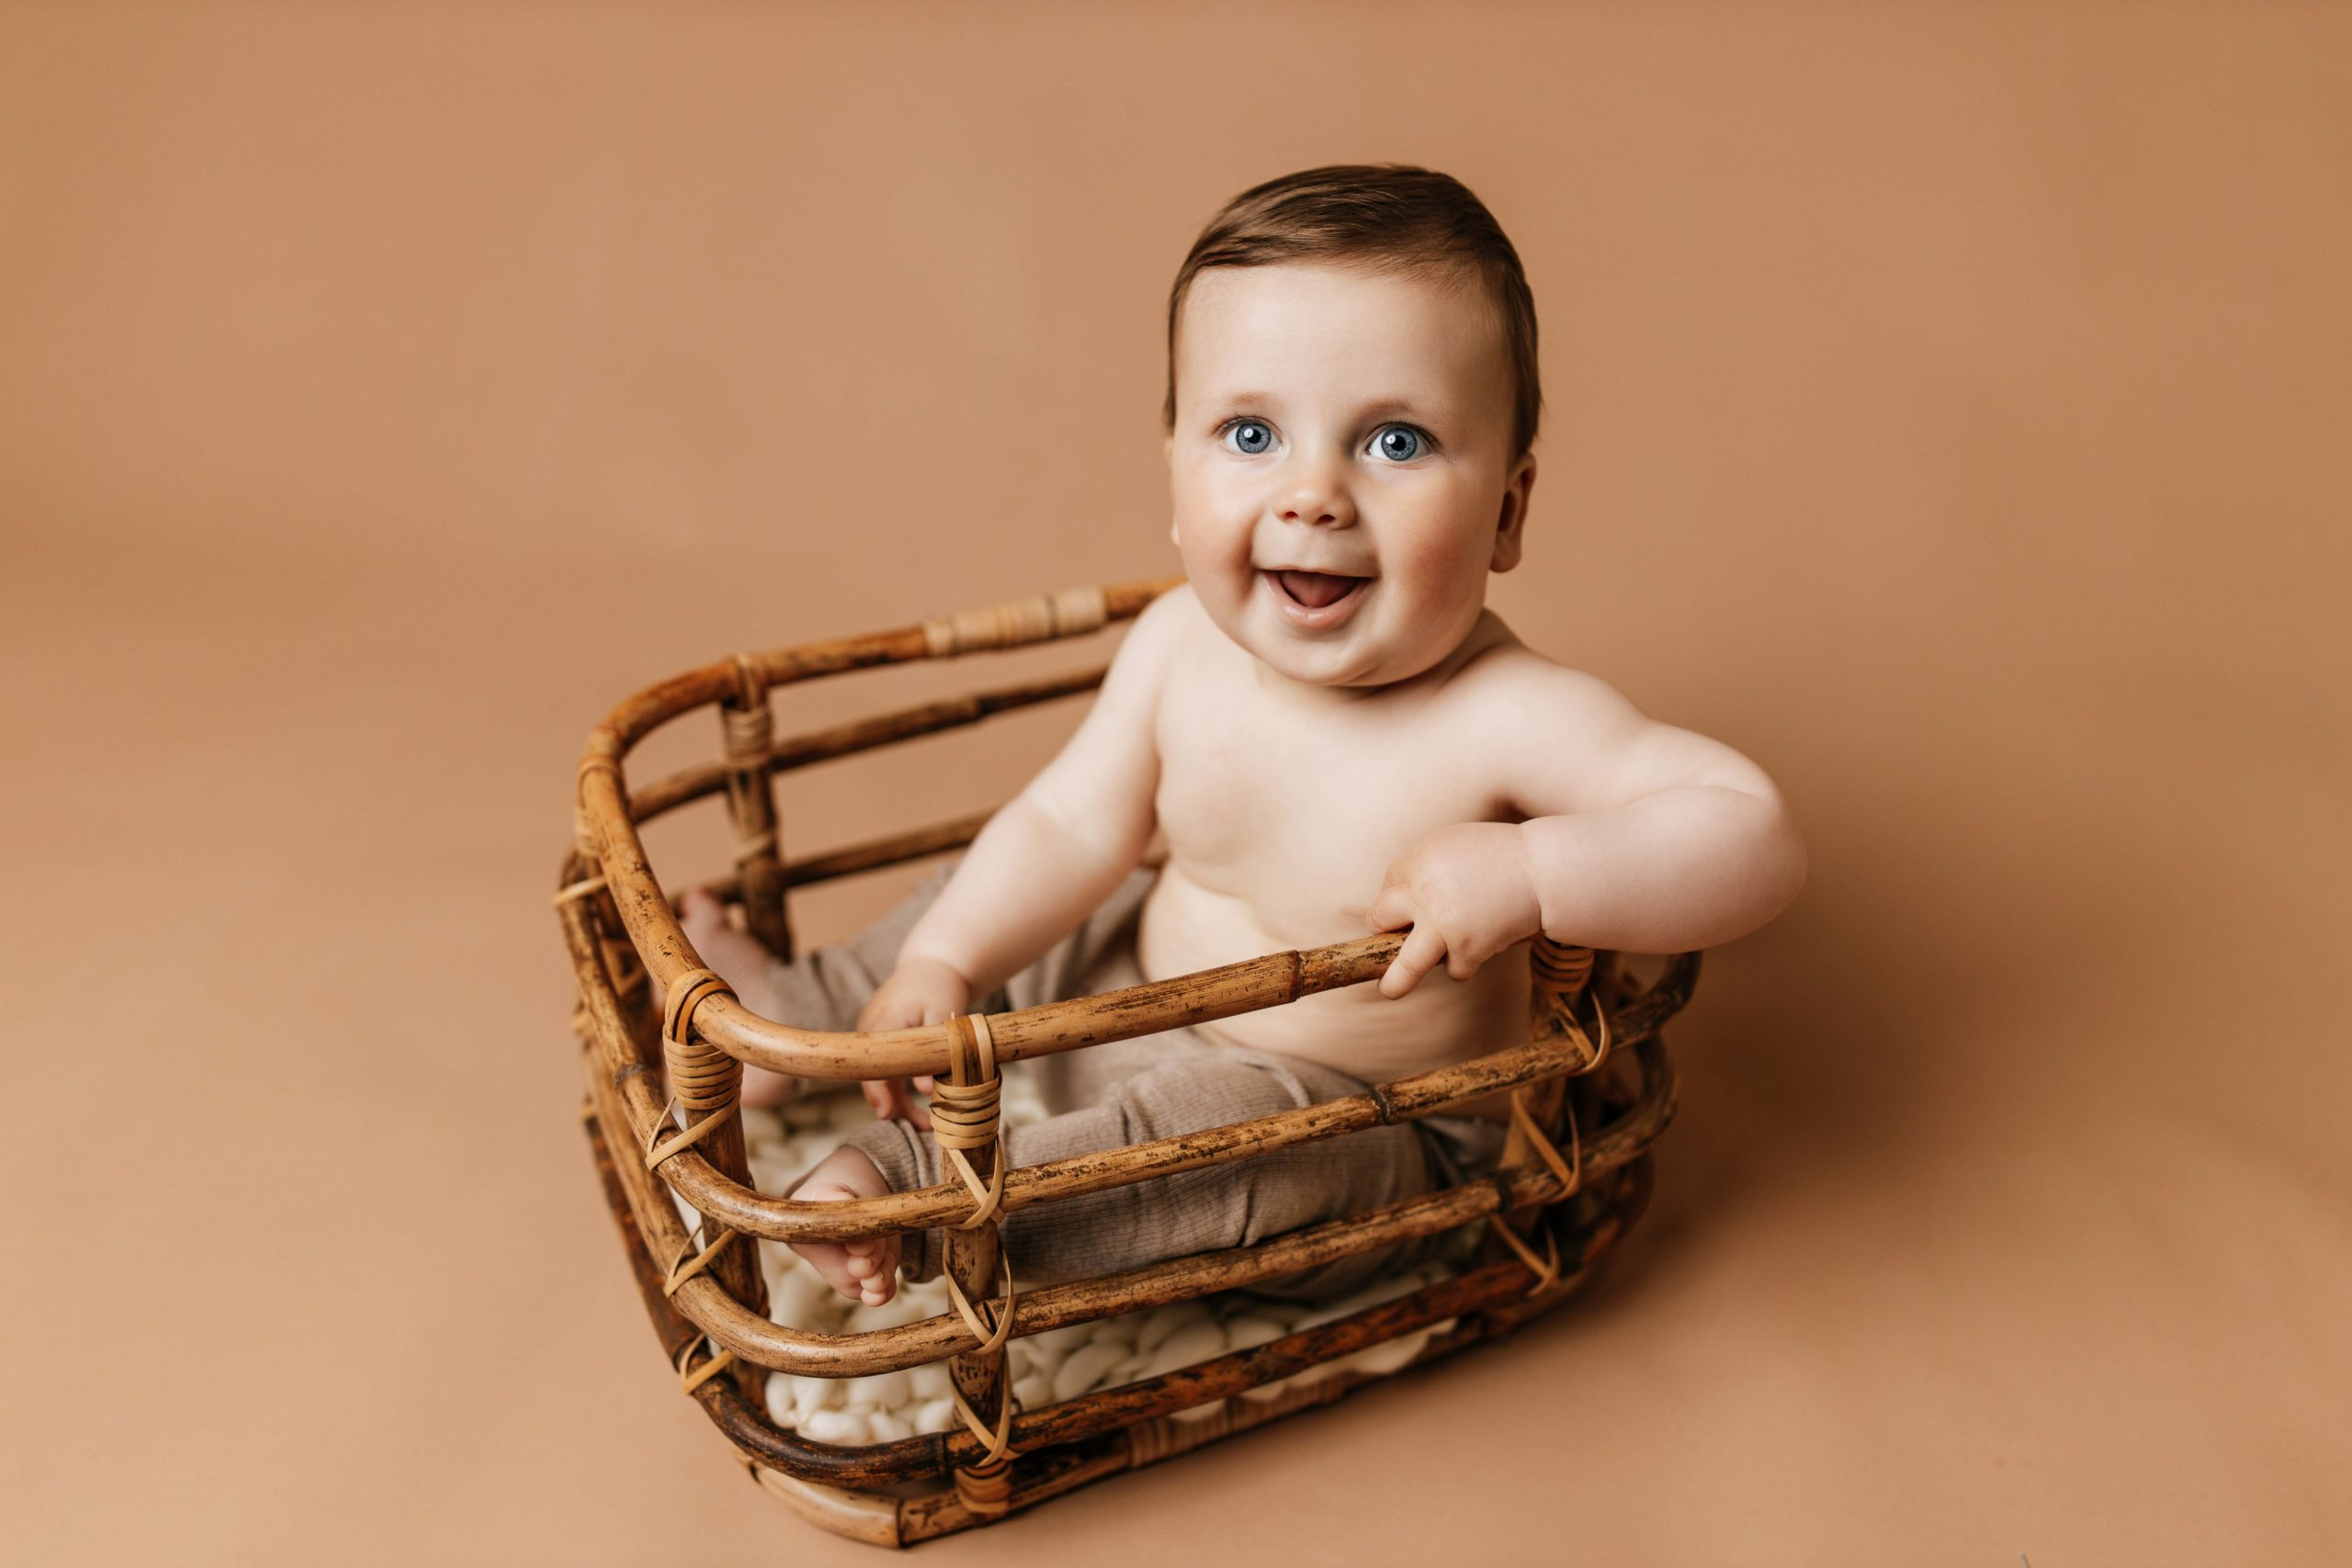 six month old sitting in bamboo basket on tan backdrop